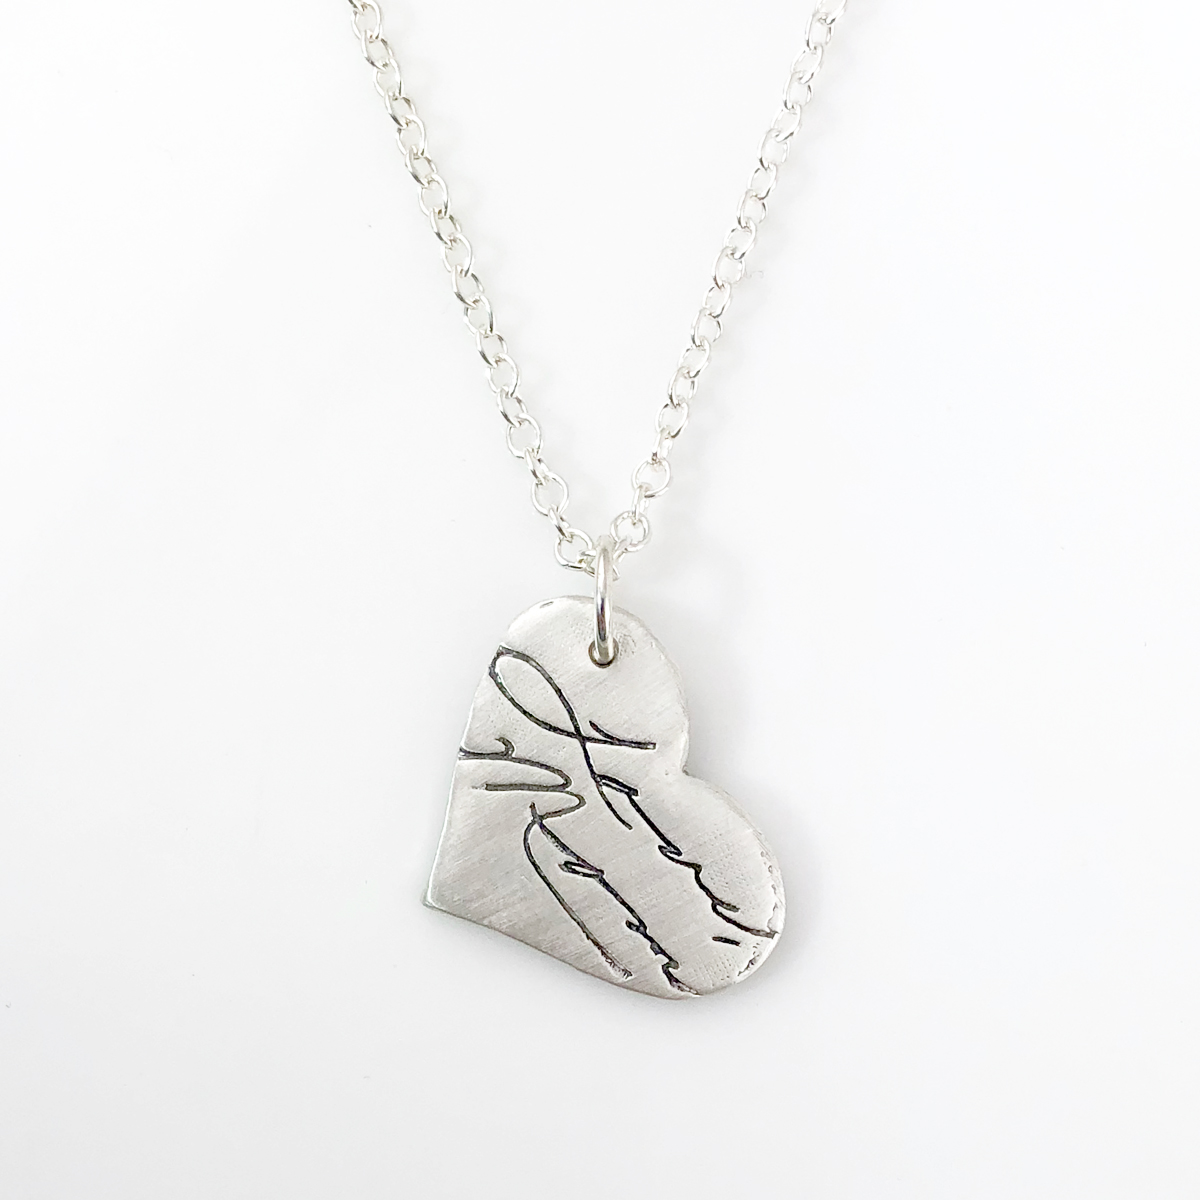 Handwriting Necklace - made from your artwork